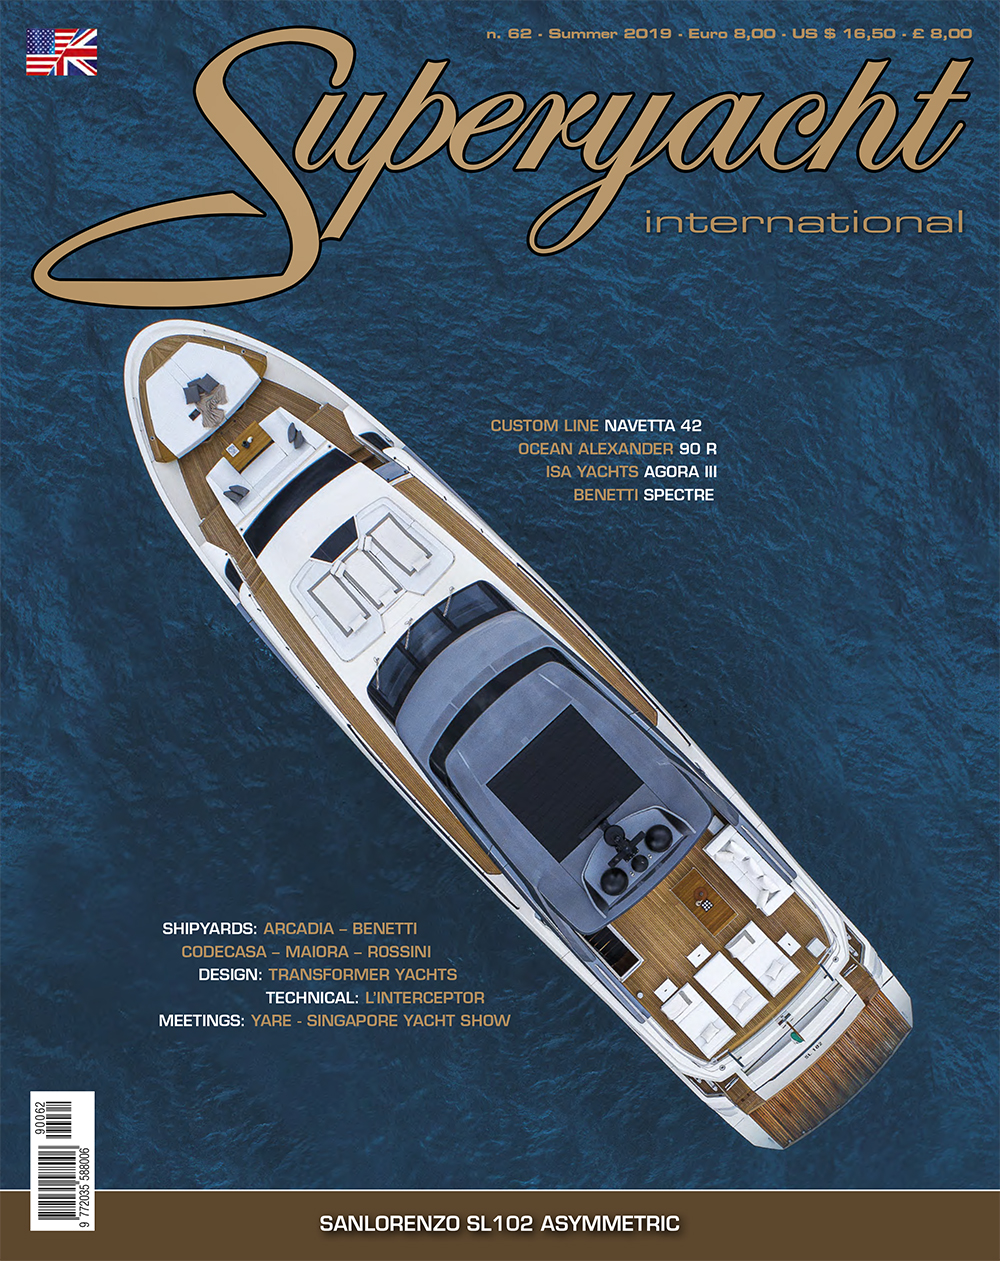 Superyacht - Sea trials, reviews and news from the world of